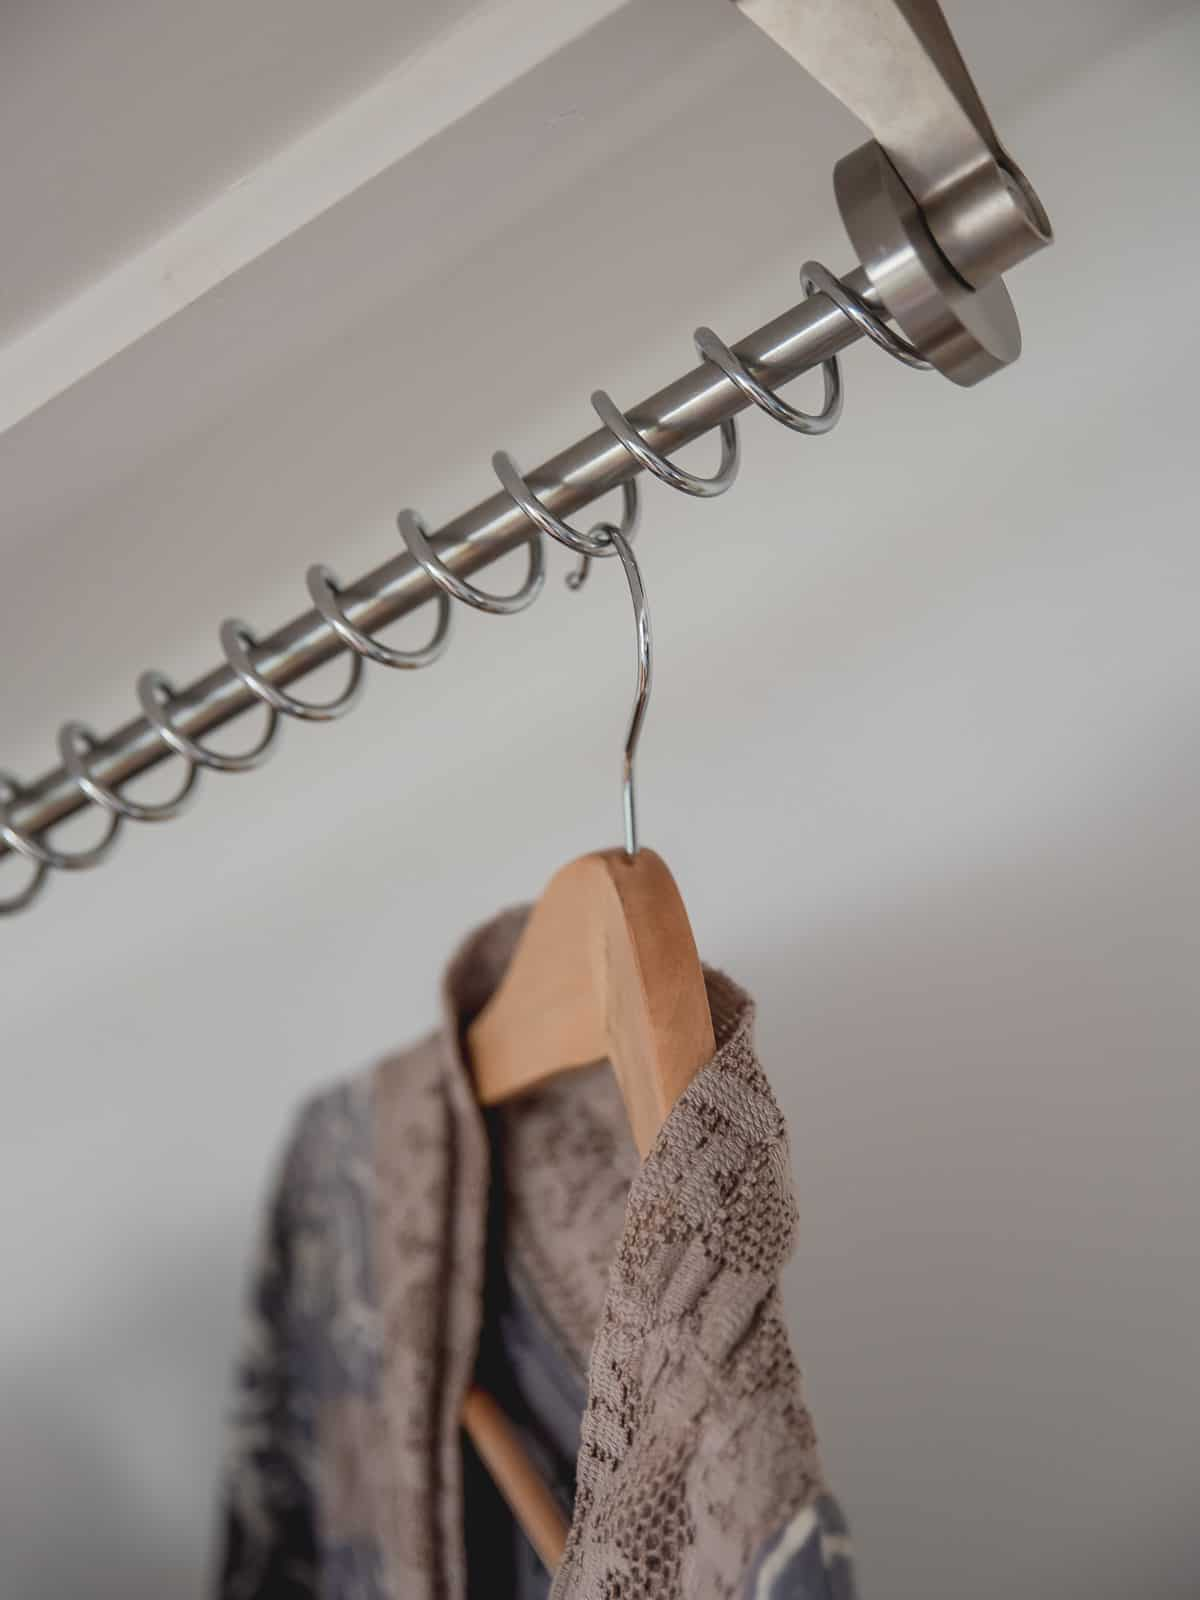 Zebedee Any Angle Hanging Rail - Chrome - Shown in use